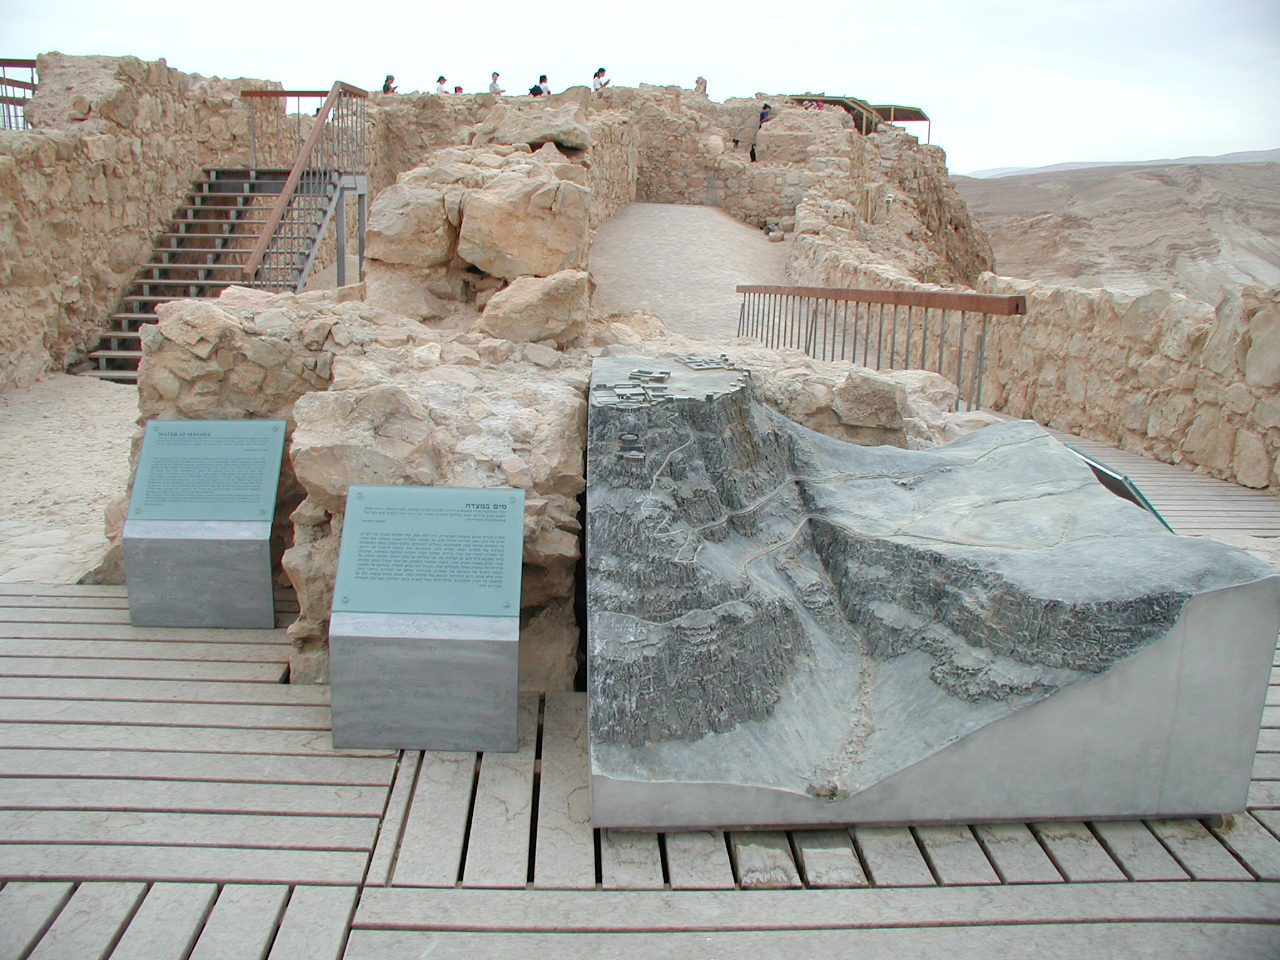 Aluminum cast models of Masada